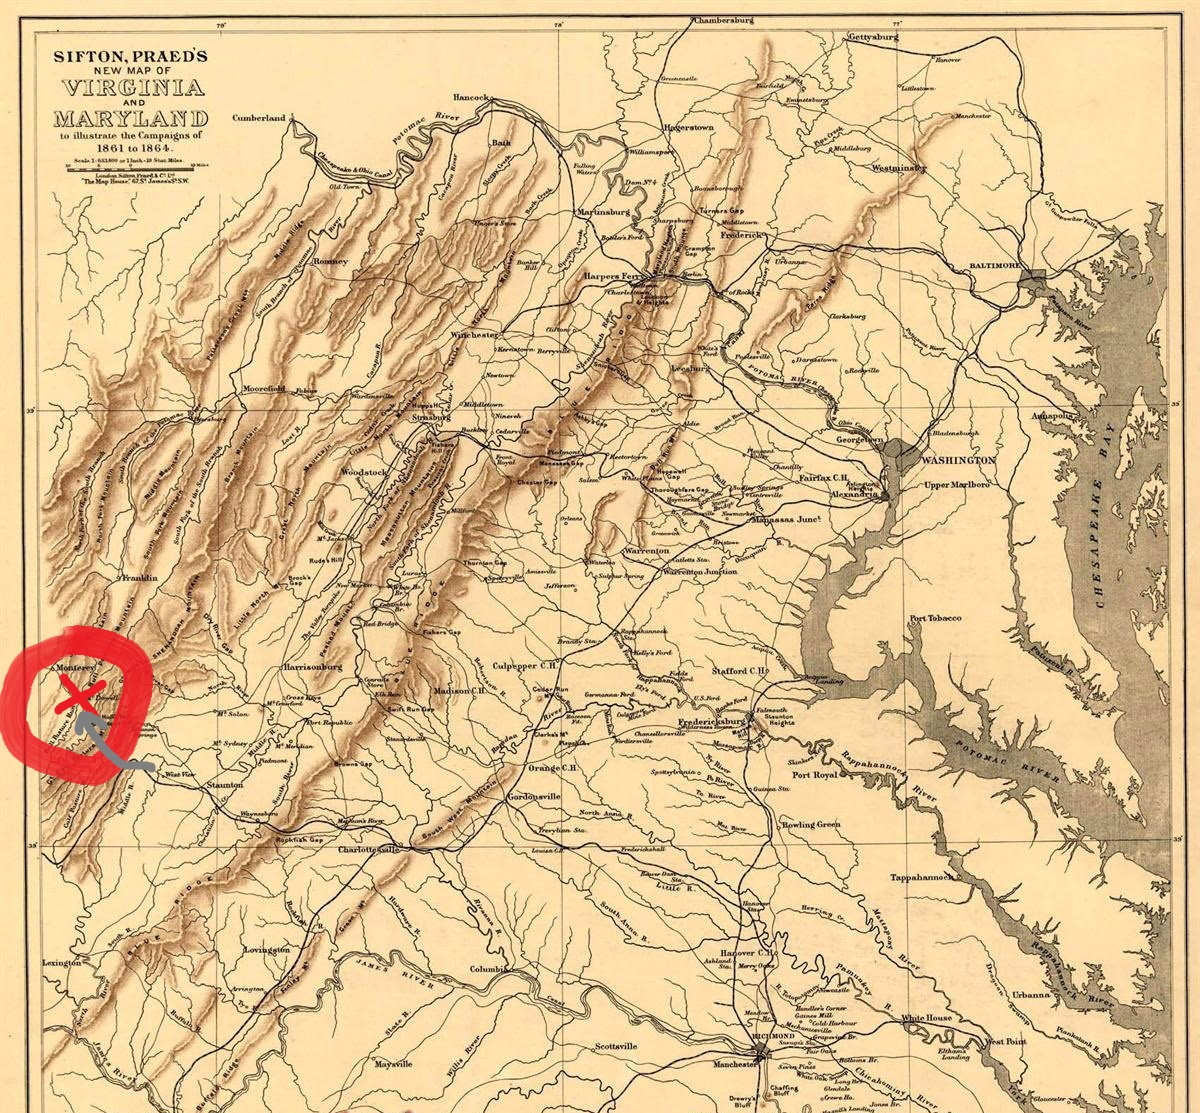 battle of mcdowell may 8 1862 part 1